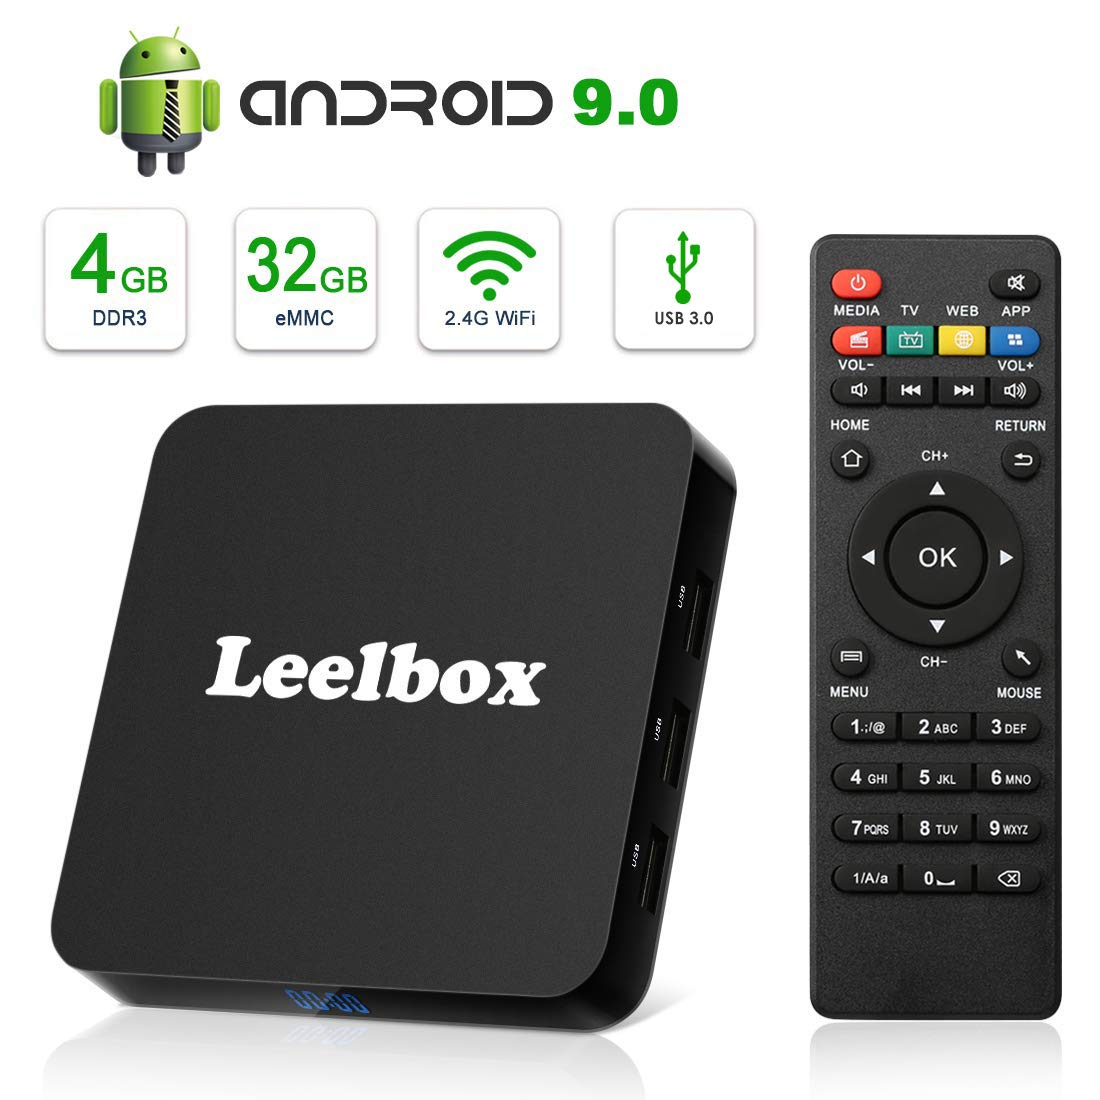 Android 9.0 TV Box, Leelbox Q4 Android Box 4GB RAM 32GB ROM RK3328 Quad-core, Support BT 4.1,2.4 GHz WiFi,H.265,USB 3.0,3D 4K 2019 Updated Version by Leelbox